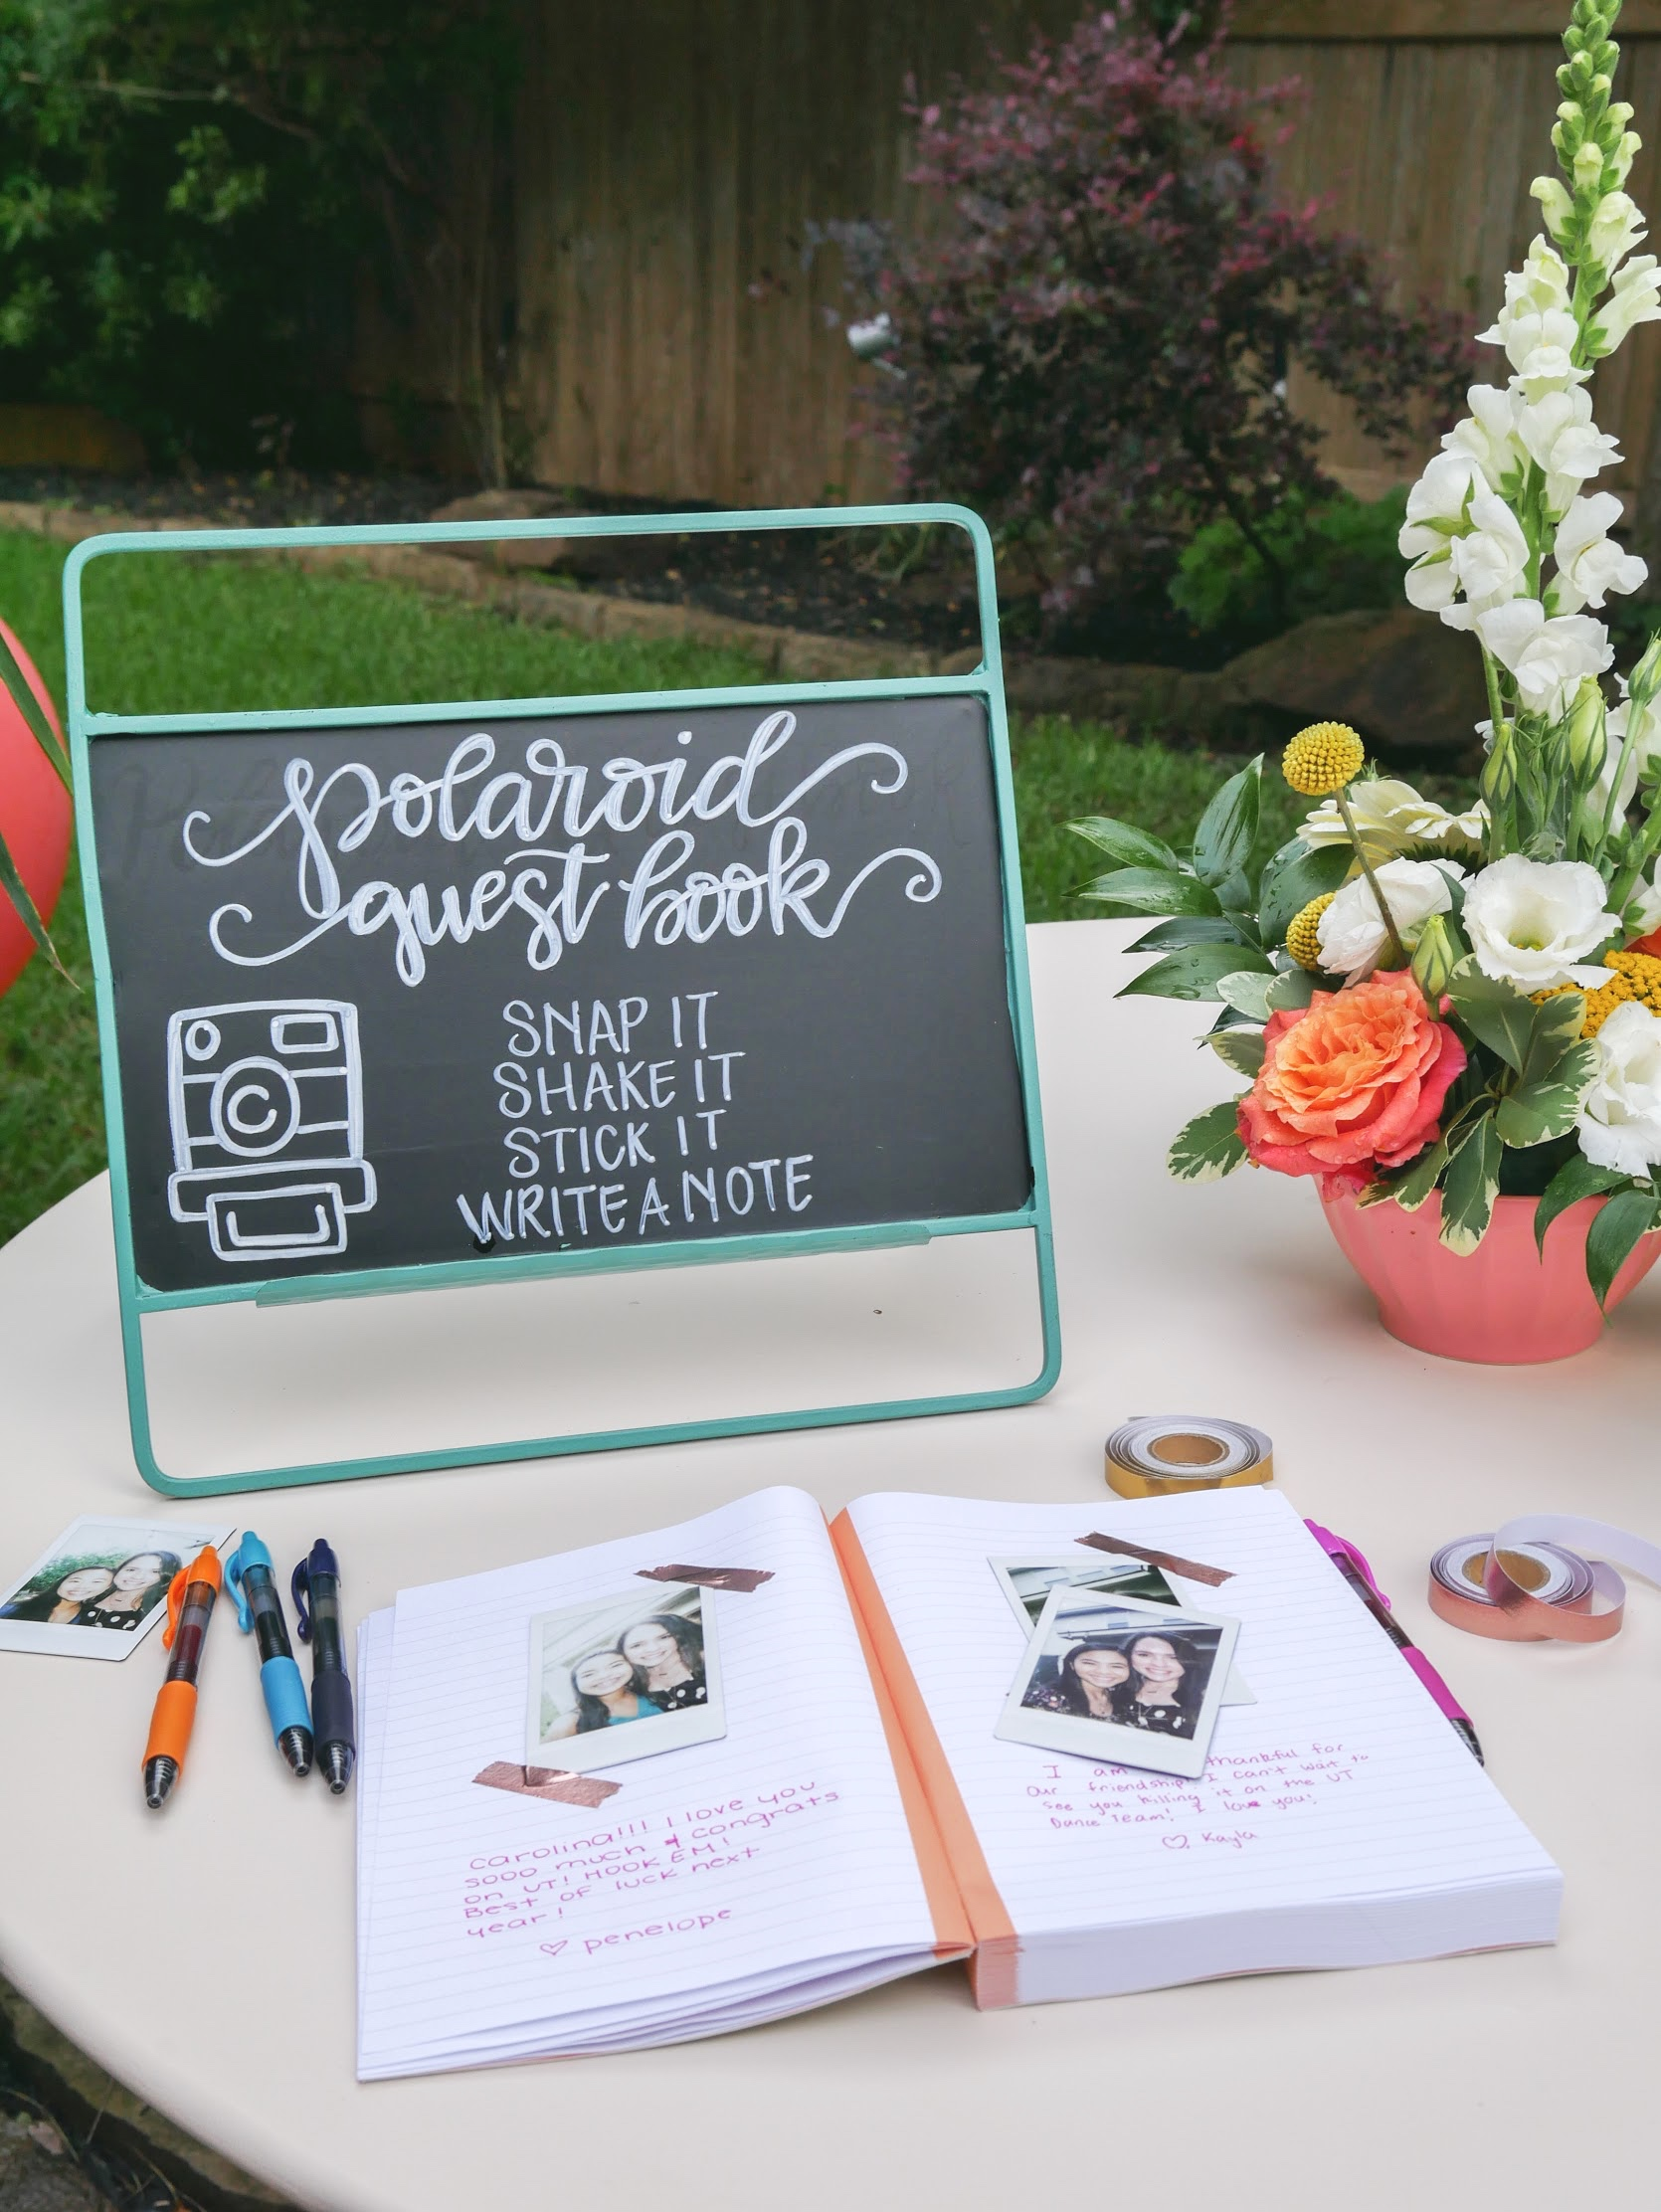 Cute graduation party idea includes creating a polaroid guest book table. See more from this Grad Party on Mint Event Design www.minteventdesign.com #graduationparty #graduationpartyideas #graduation #gradparty #gradpartyideas